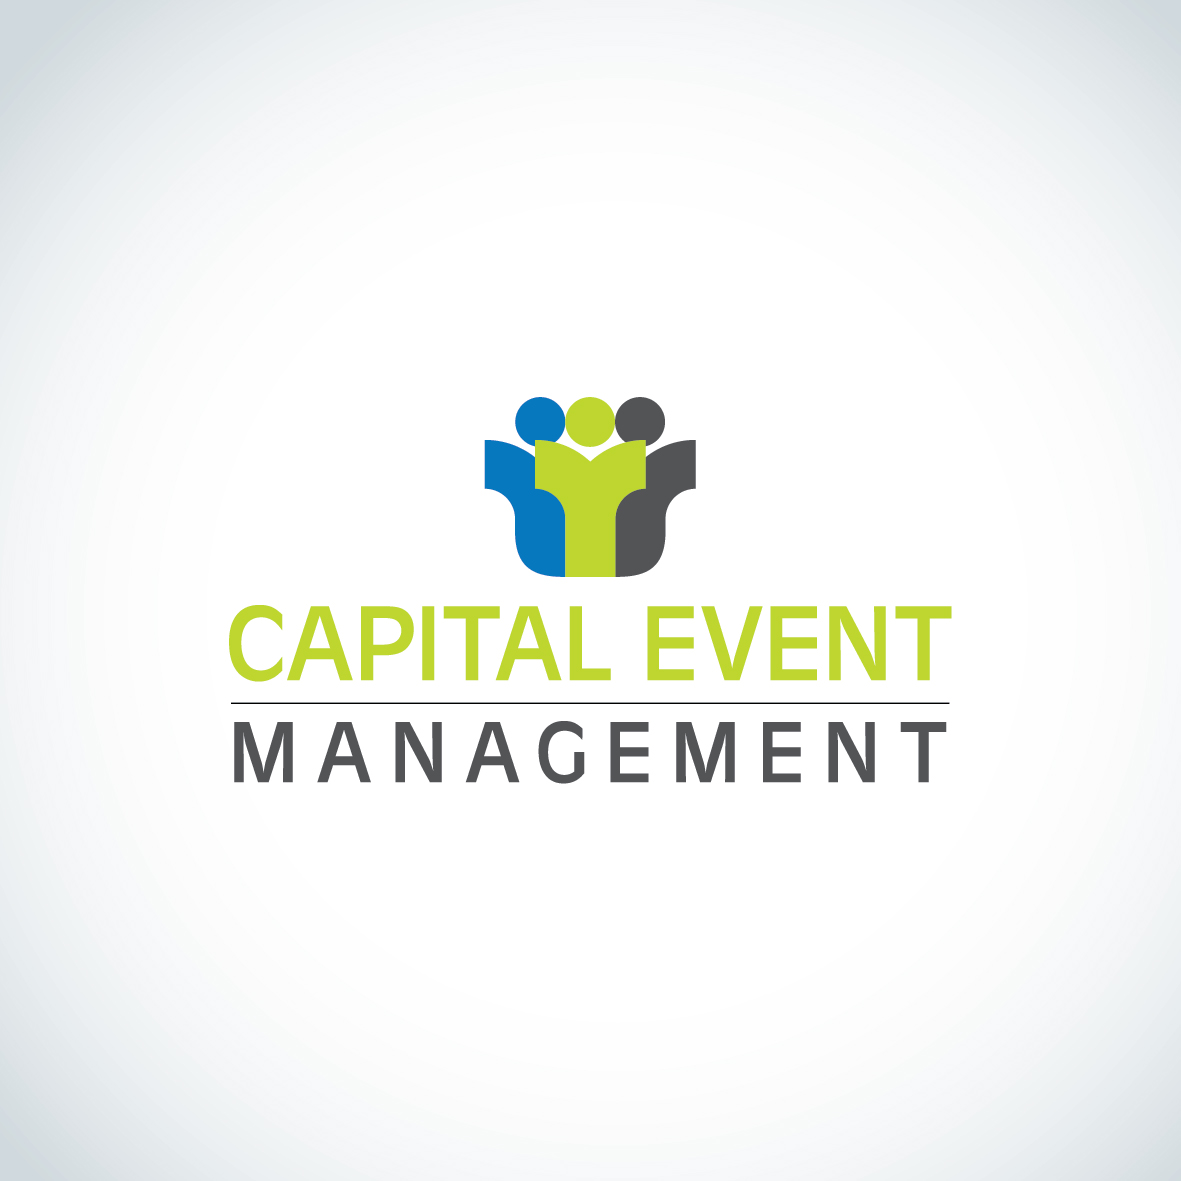 Logo Design by aesthetic-art - Entry No. 17 in the Logo Design Contest Capital Event Management.